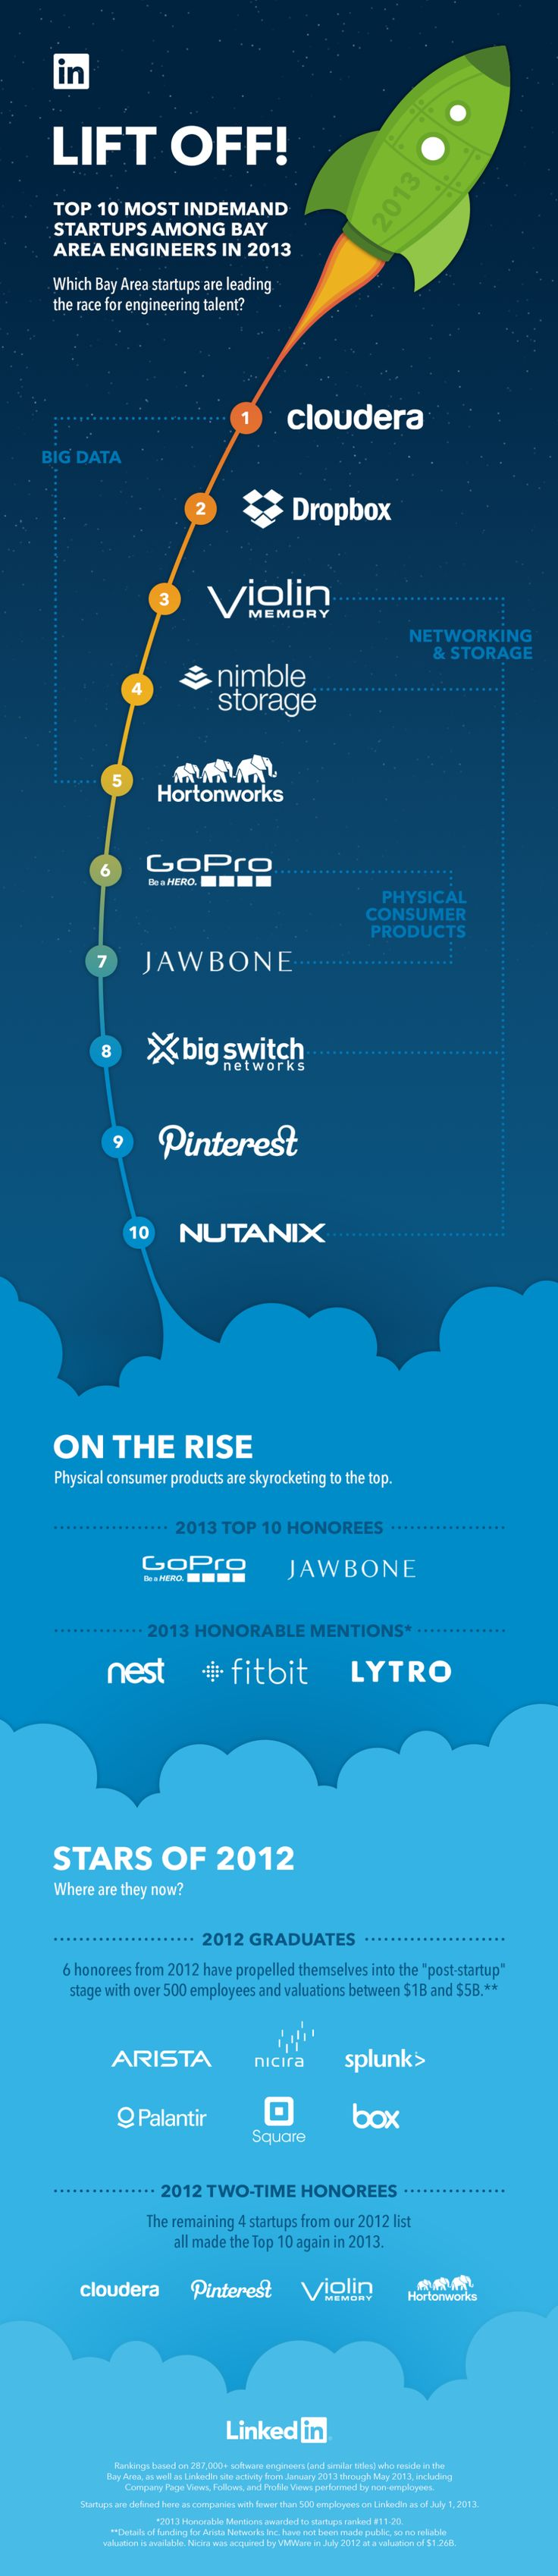 Silicon Valley's 10 most InDemand startups in 2013 by LinkedIn. #infographic